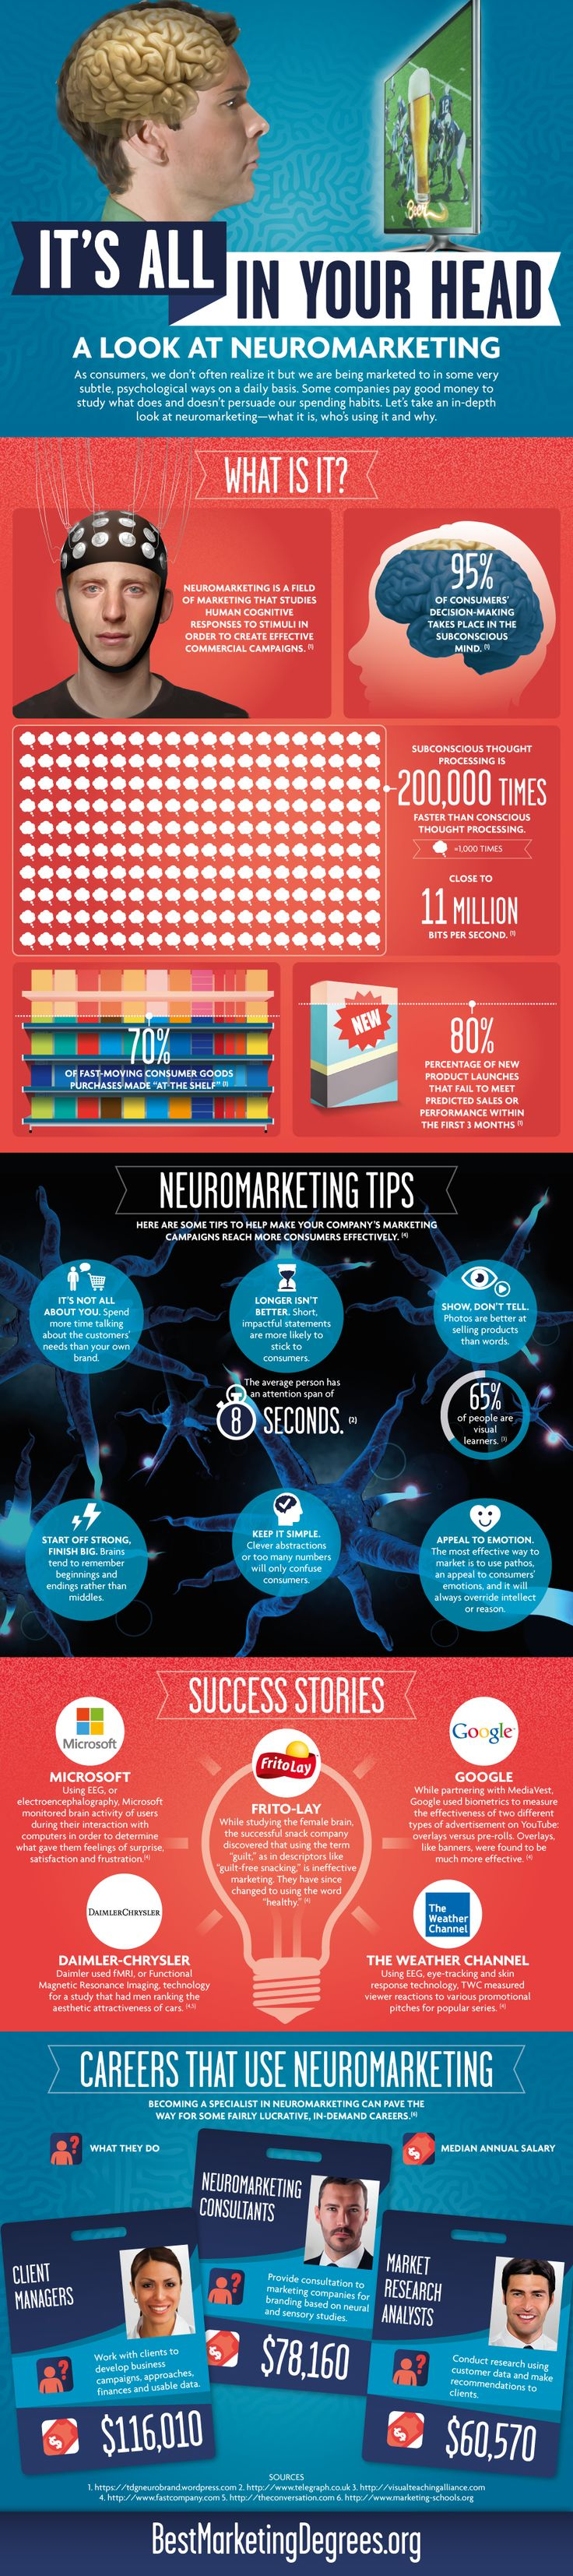 the effects of neuromarketing in consumer Many consumer preferences and actions can be ascribed to processing fluency, even though consumers are not aware of this effect priming is the process by which sensory inputs nonconsciously influence our thinking and behavior.